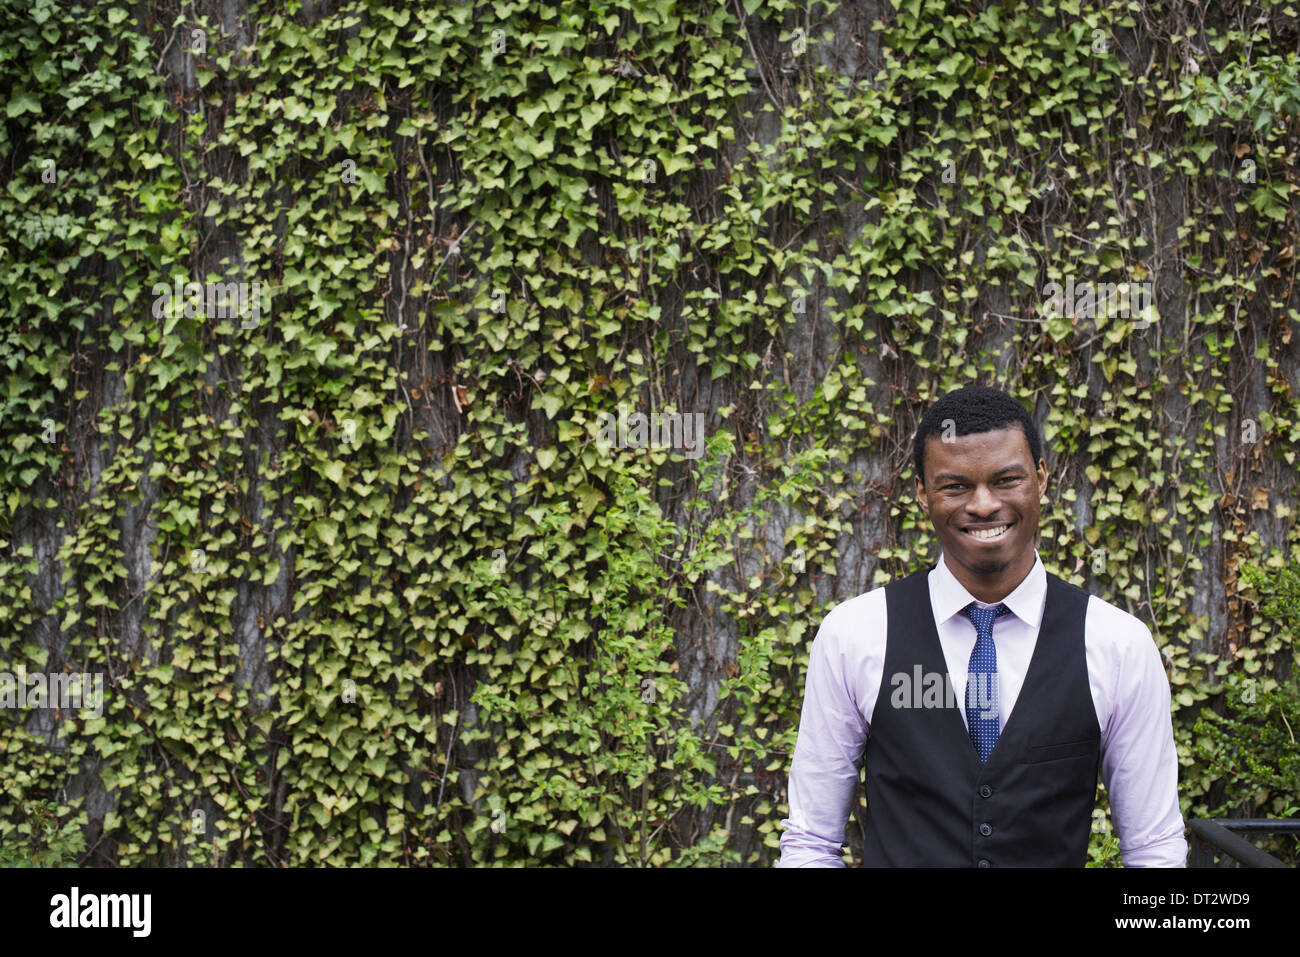 City park with a wall covered in climbing plants and ivy A young man in a waistcoat shirt and tie Looking at the camera - Stock Image